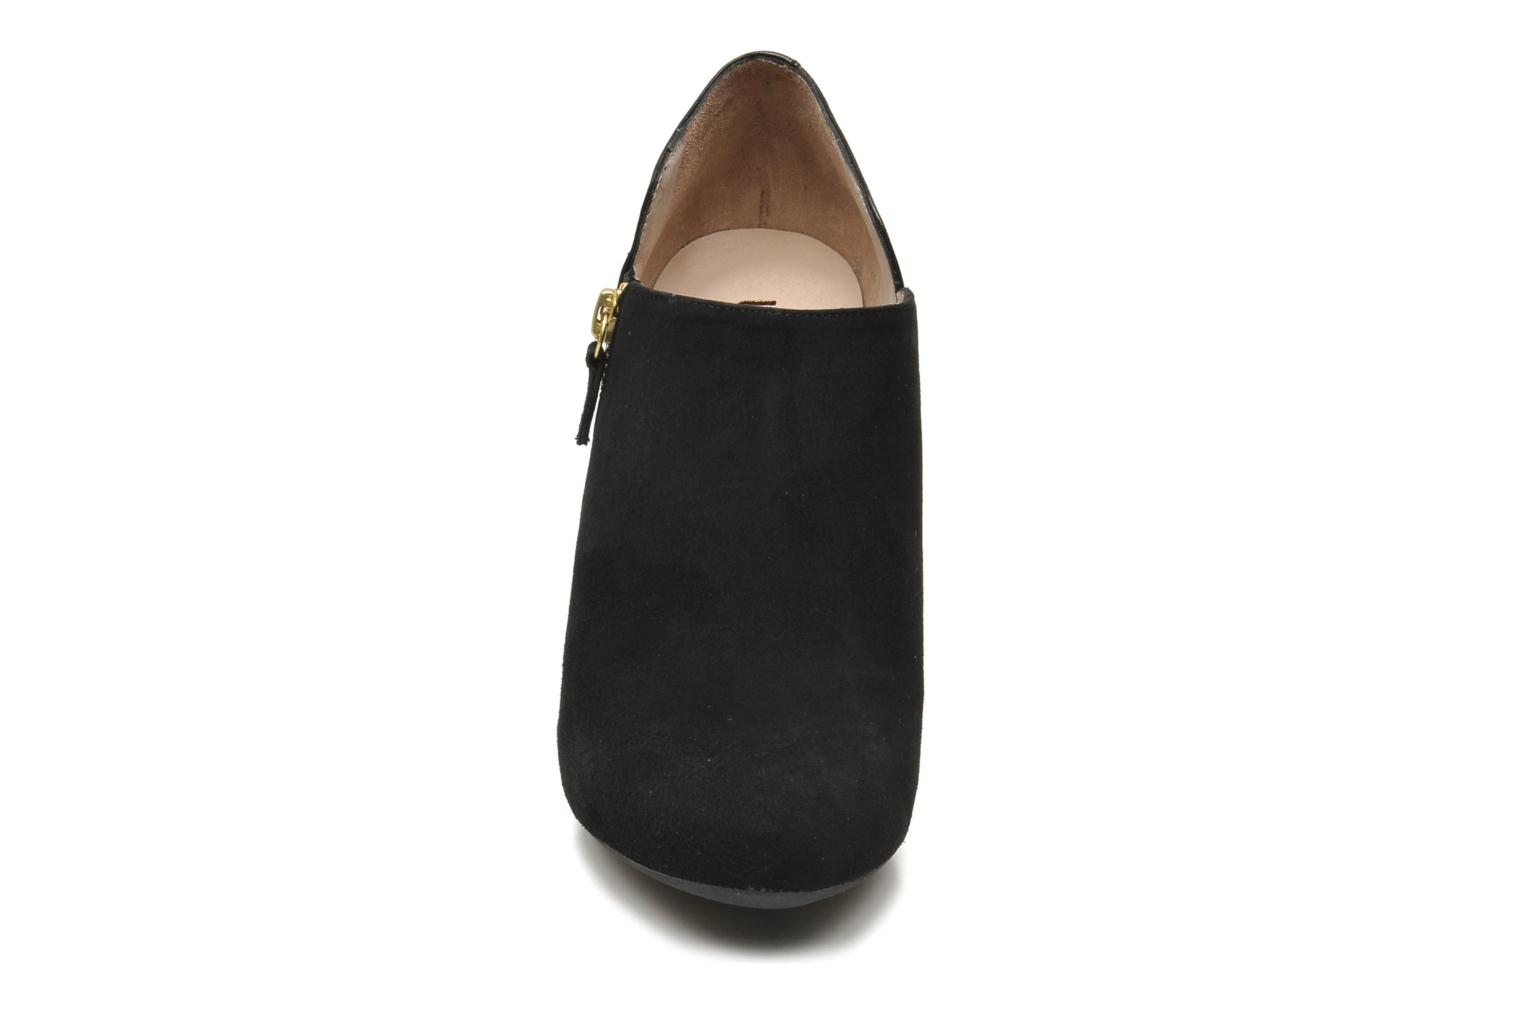 Pumin Kid Suede Nappa silk Black